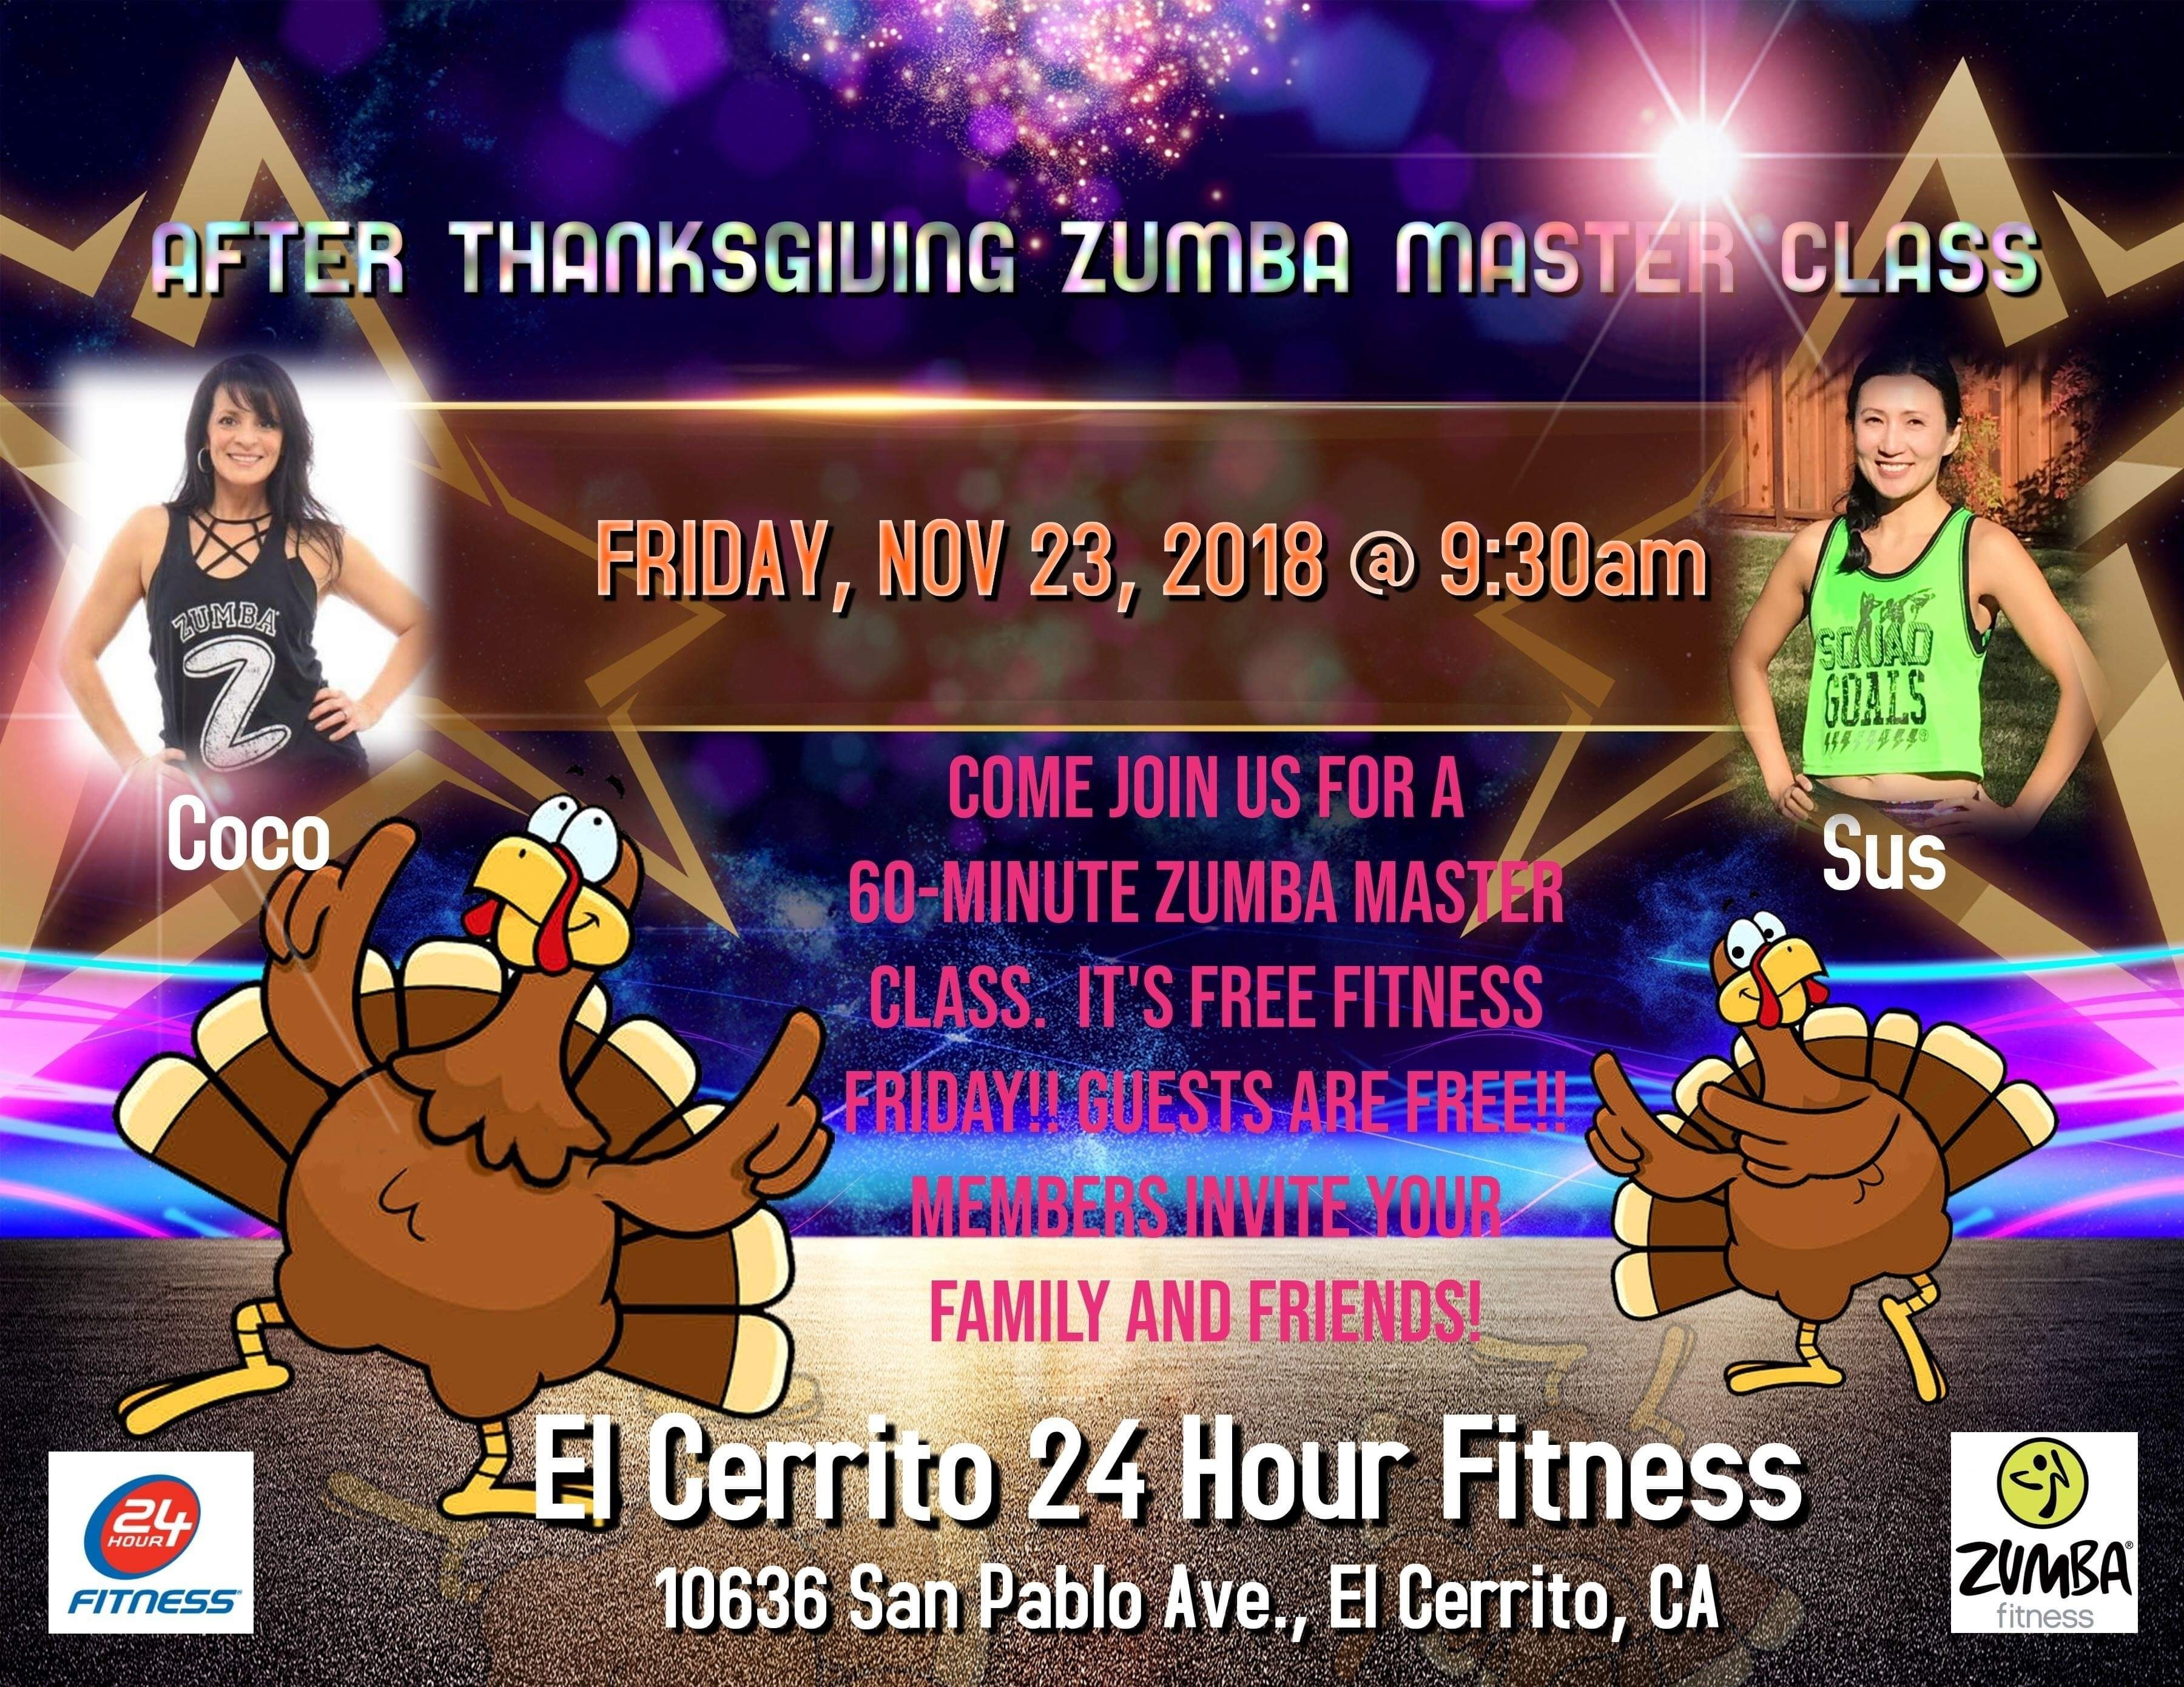 Zumba - Ditch the Workout, Join the Party